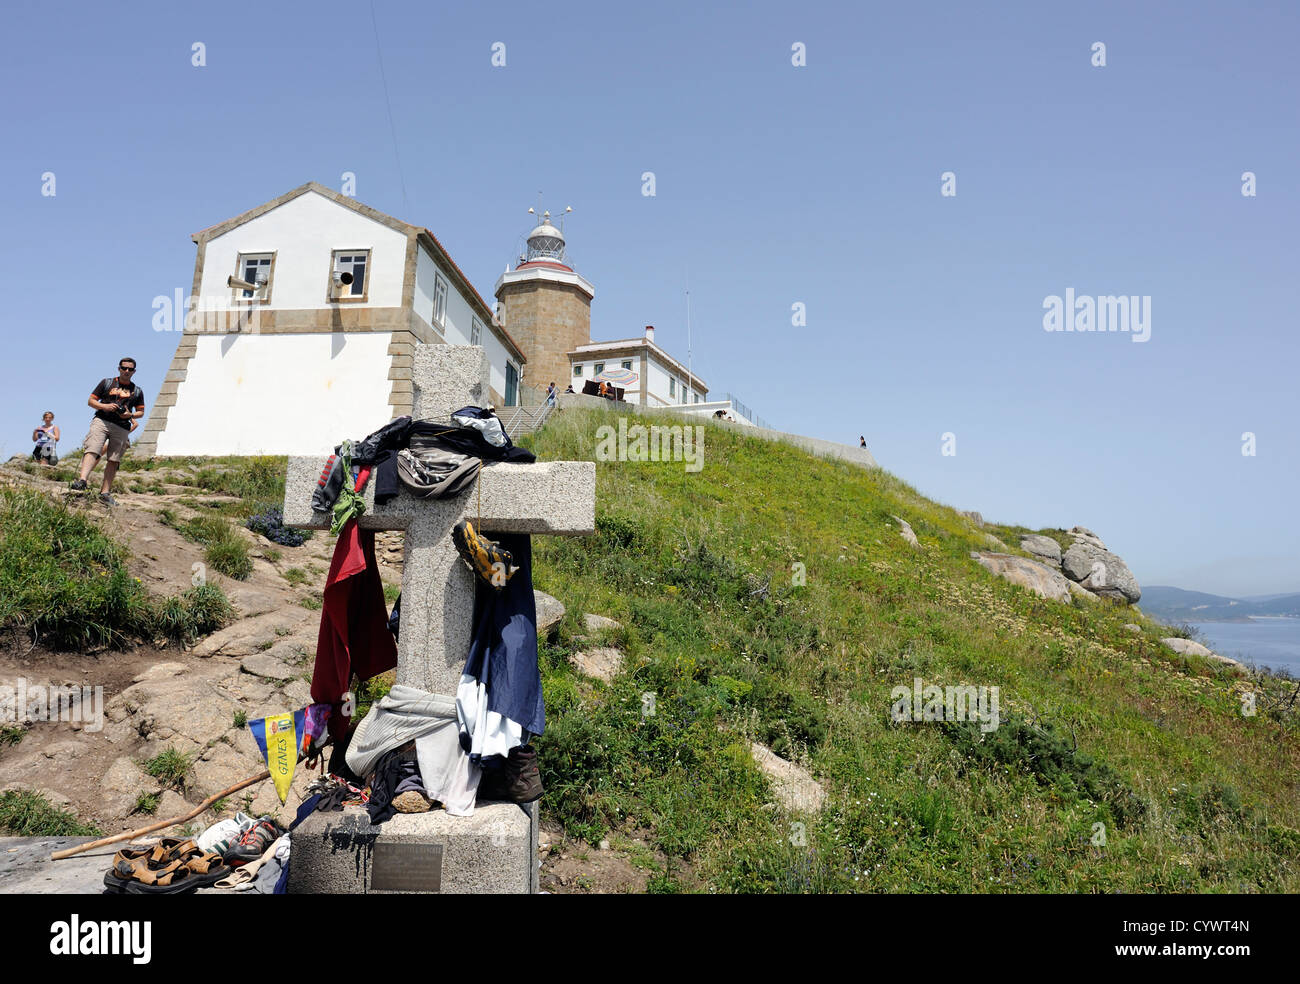 A stone cross on Cape Finisterre, Cabo Fisterra, where pilgrims on the Way of St James have burned or left  their - Stock Image